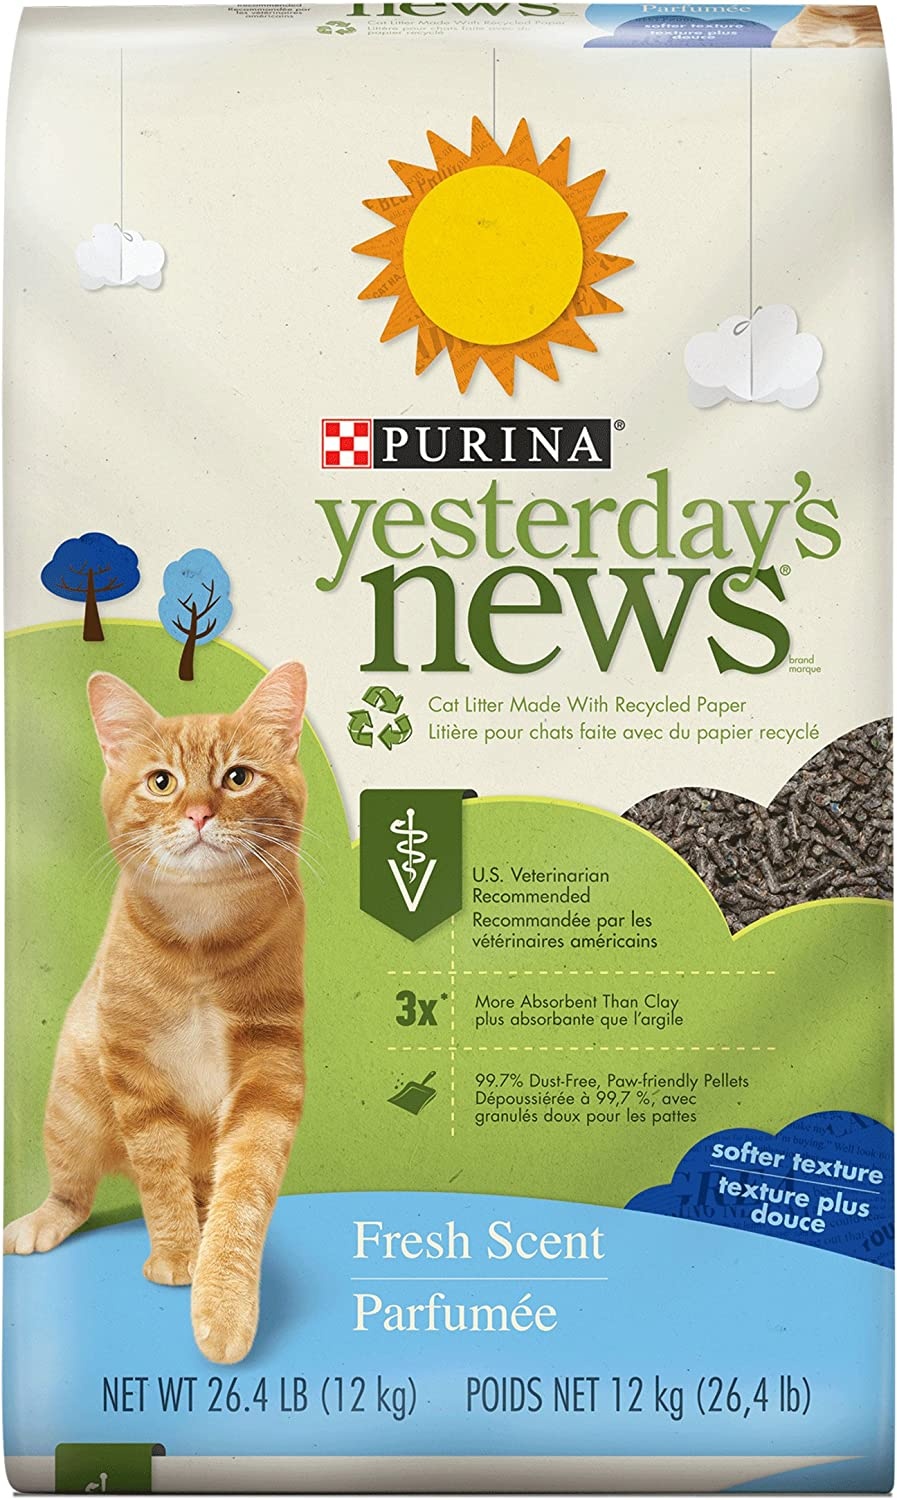 Purina Yesterday's News Fresh Scent Paper Cat Litter